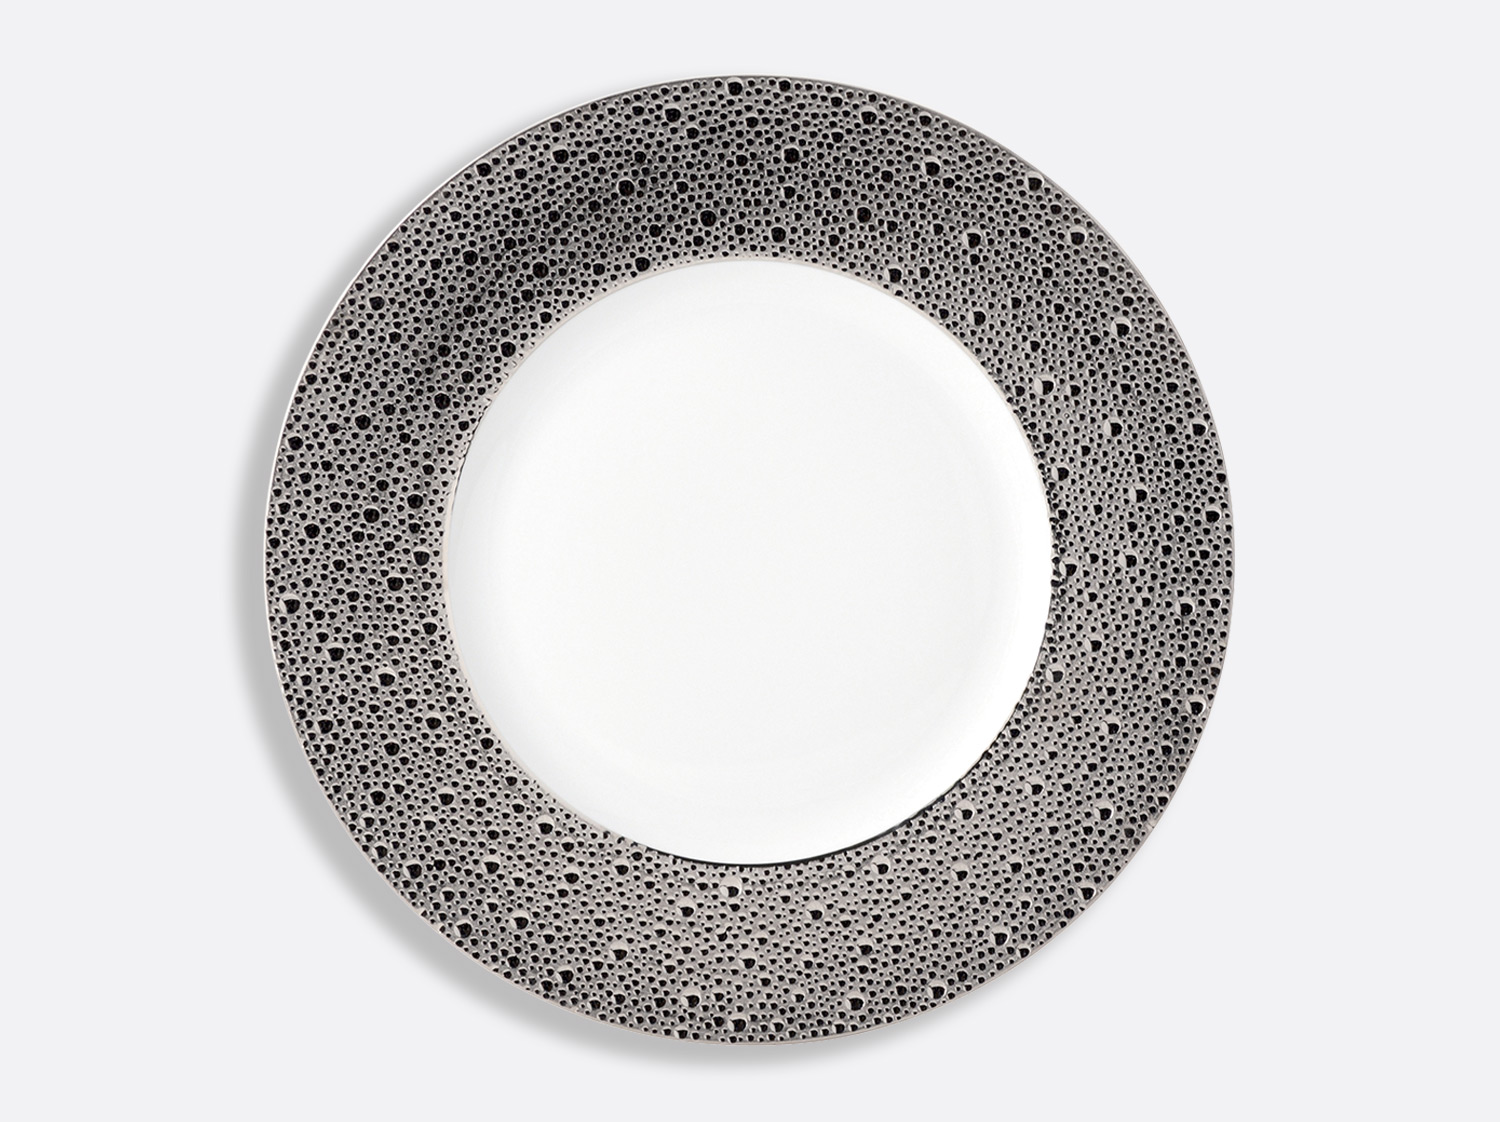 Assiette plate 31,5 cm en porcelaine de la collection Ecume platine Bernardaud